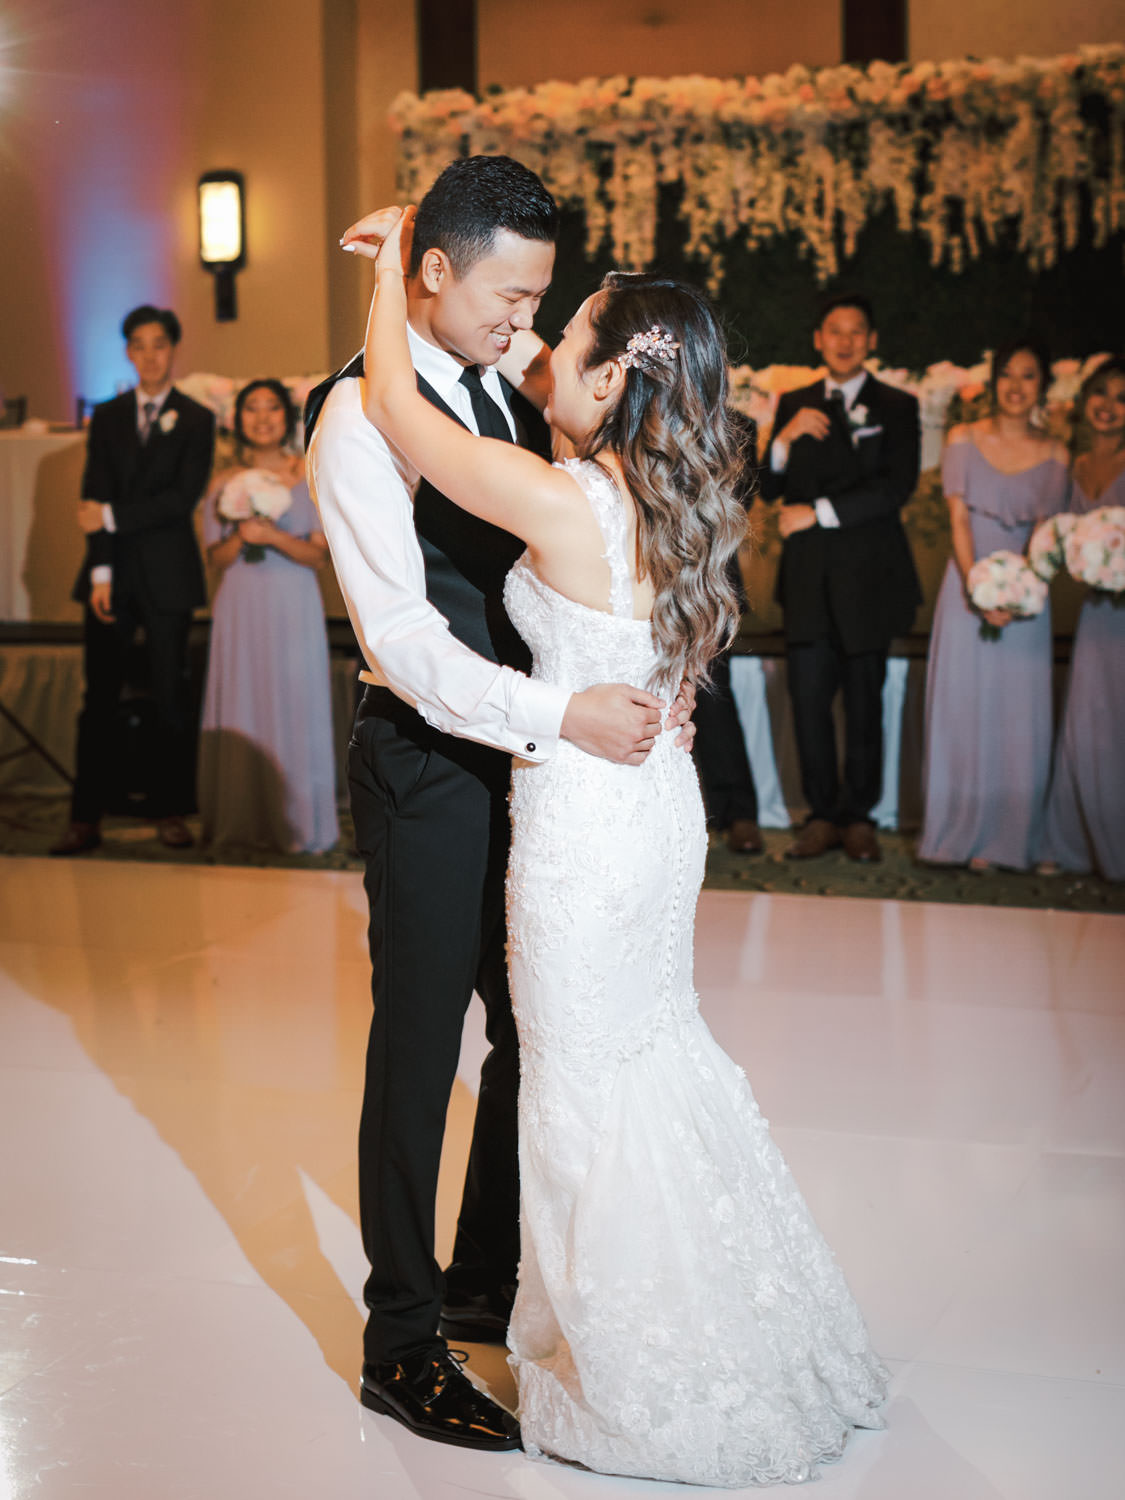 Bride and groom first dance. Wedding at Rancho Bernardo Inn in the Aragon Ballroom. photo by Cavin Elizabeth Photography